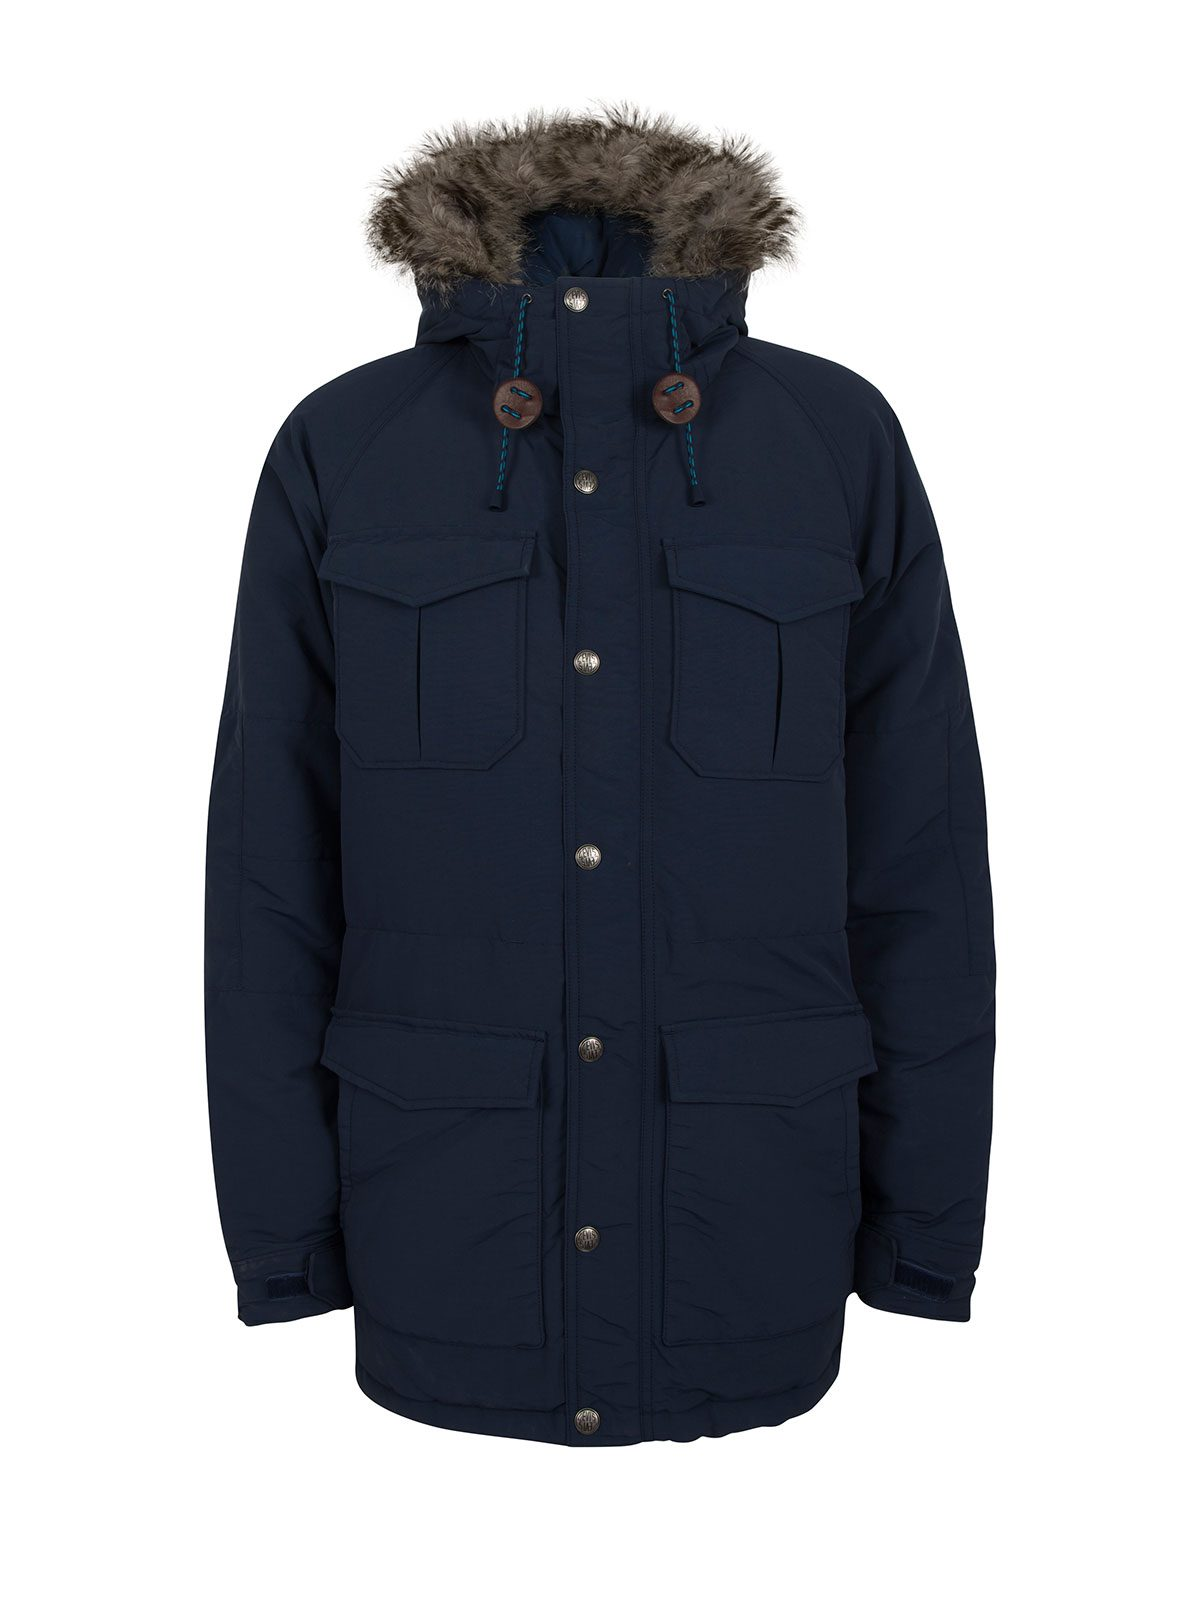 Levis Blue Fur Parka €220 at Arnotts – Cool and Cosy all at Once